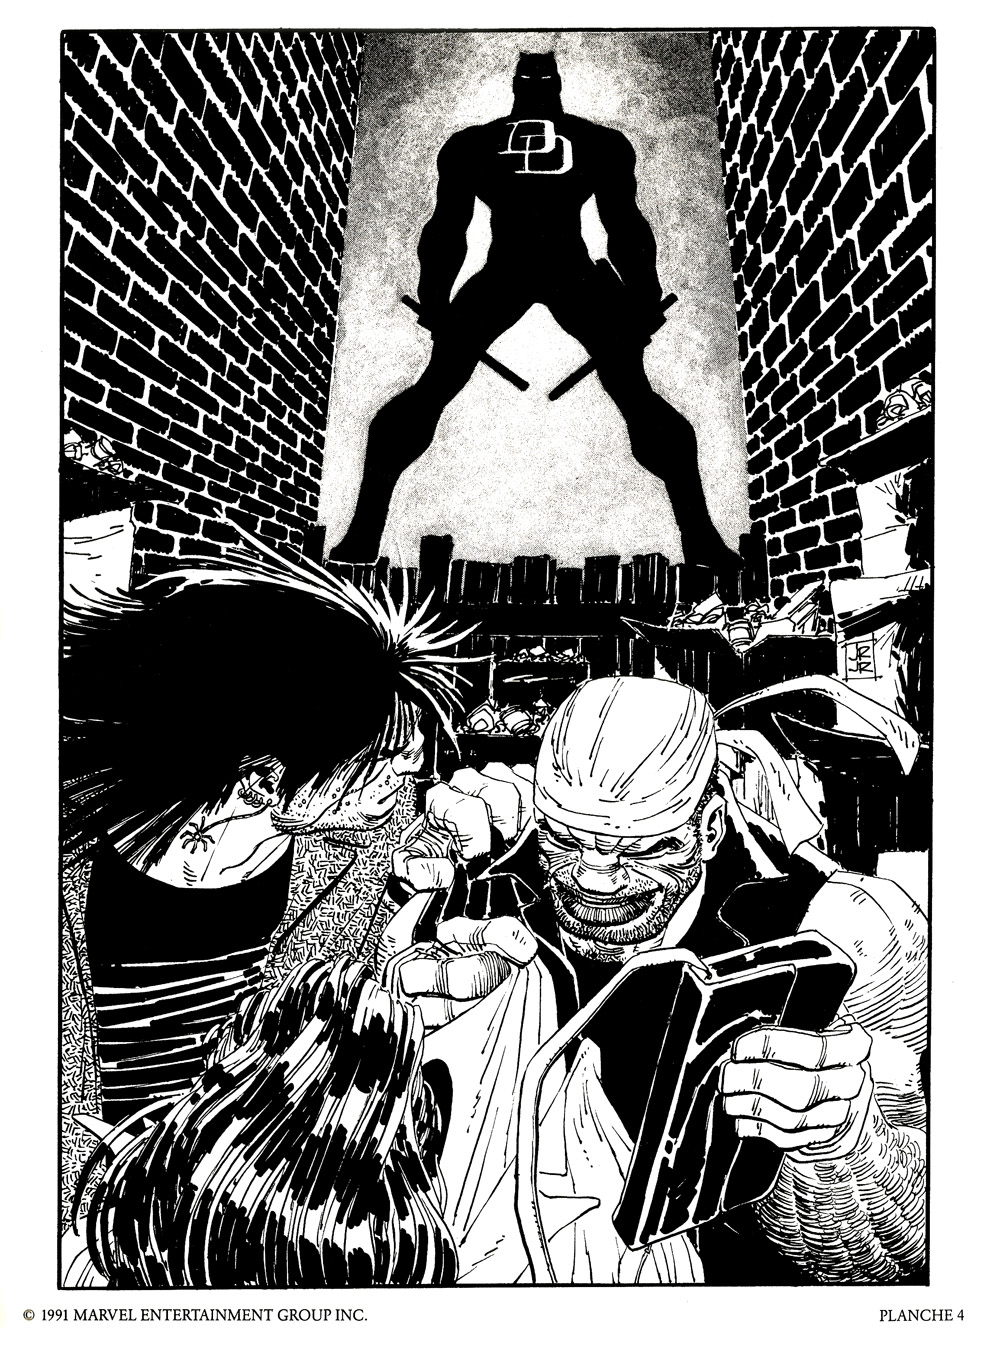 Daredevil Portfolio by John Romita, Jr (1991) | 'TAIN'T THE